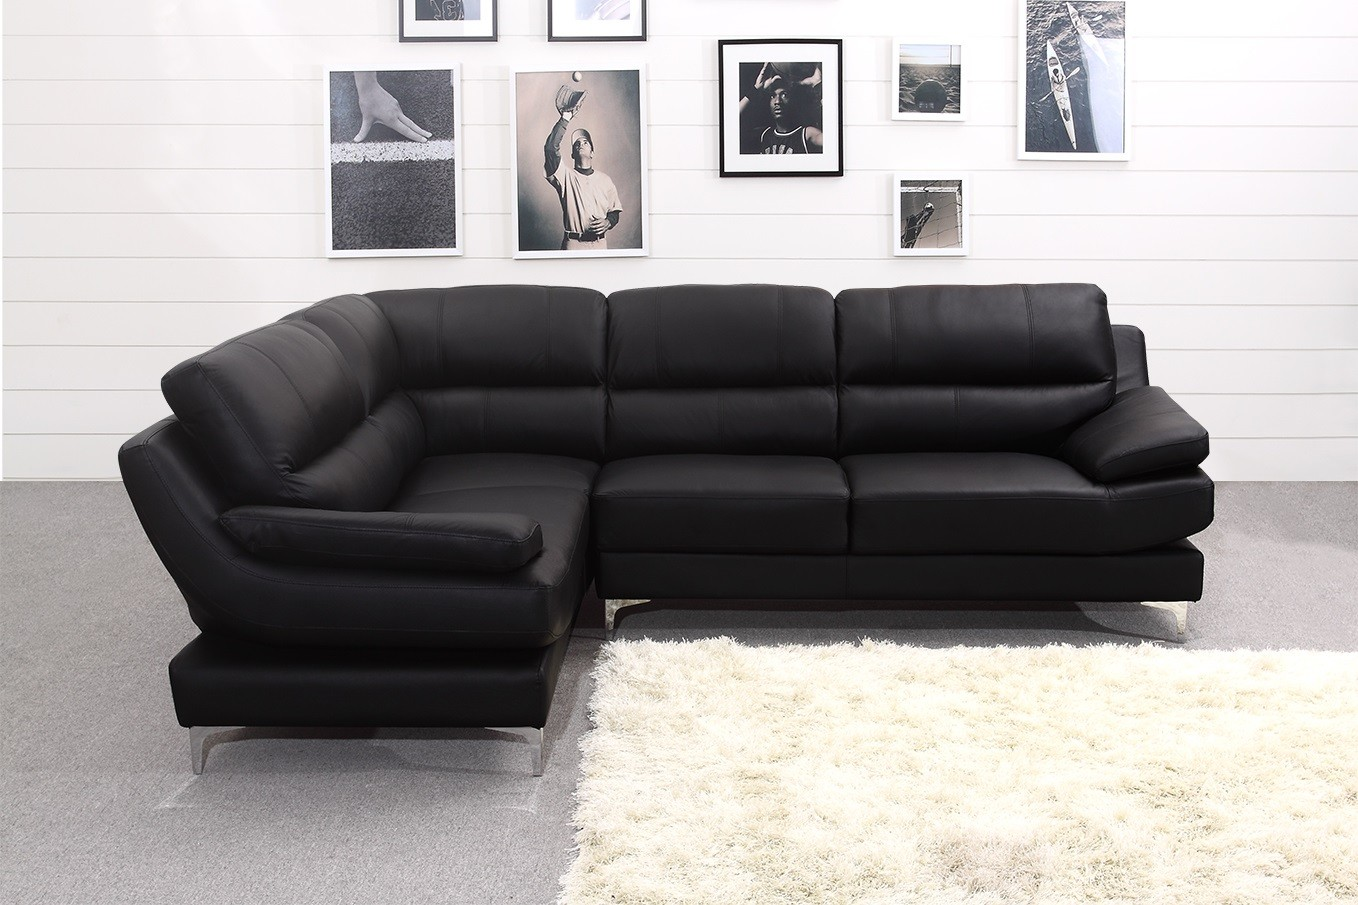 Luxury Leather Ottoman ~ Luxury leather sofa set designs that will make you